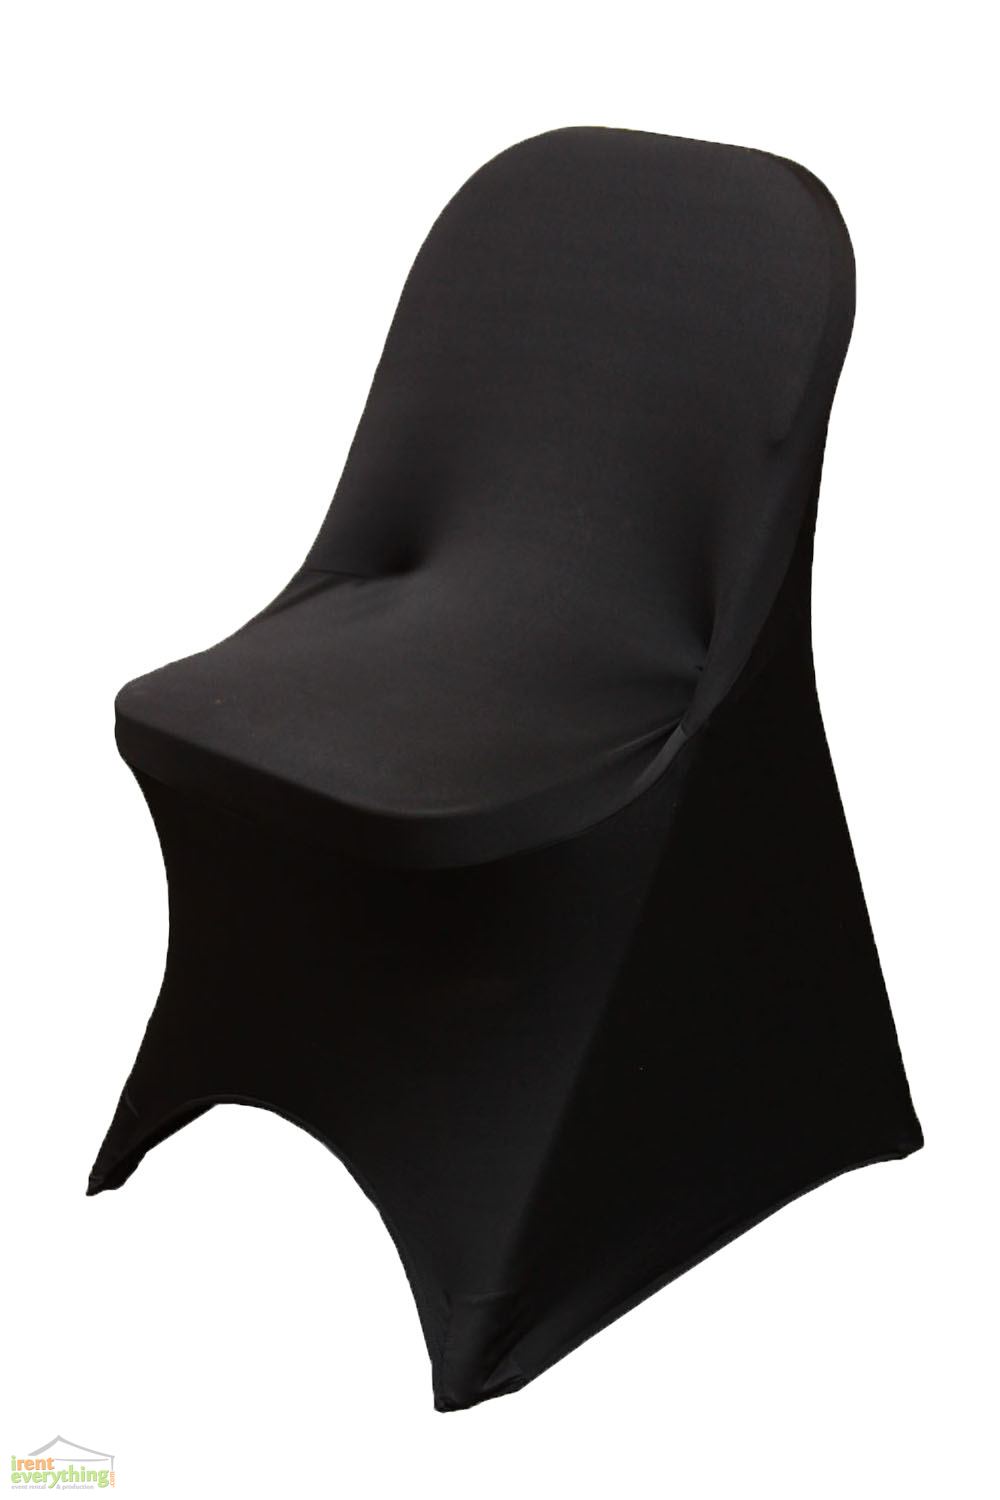 chair covers for folding chairs rent treasure garden (folding) - spandex irent everything